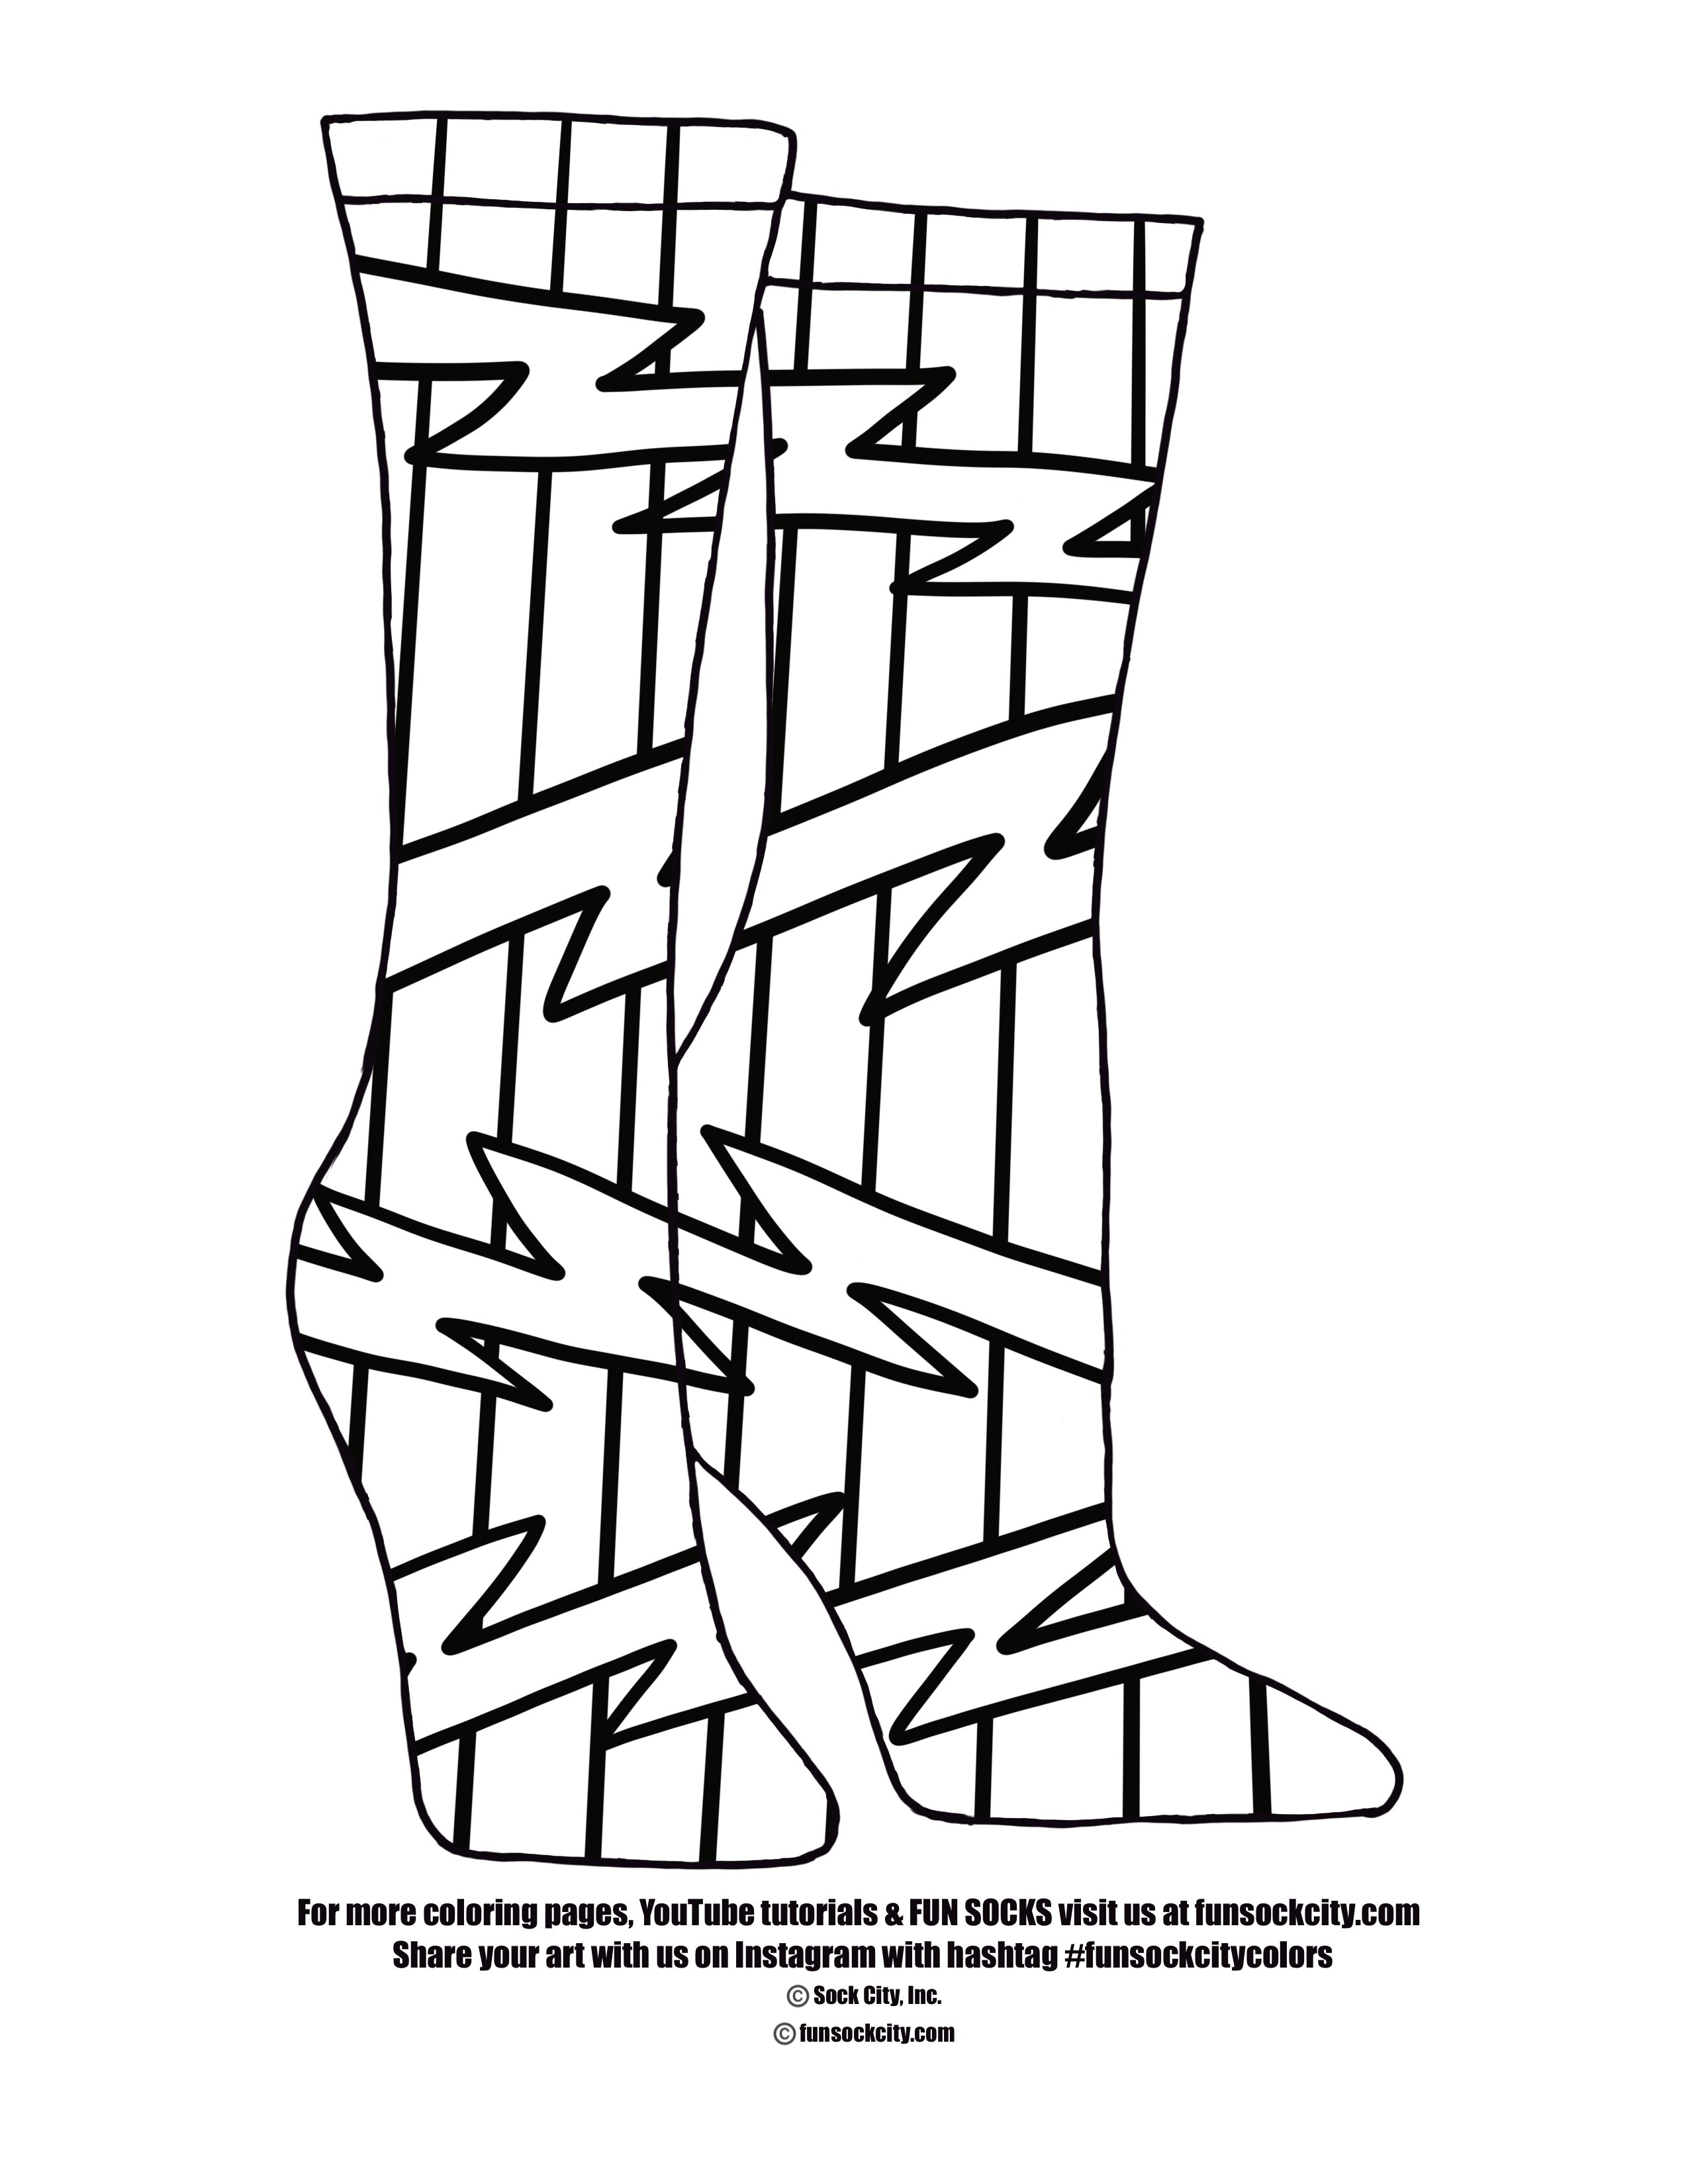 Bolt Sock Coloring Page